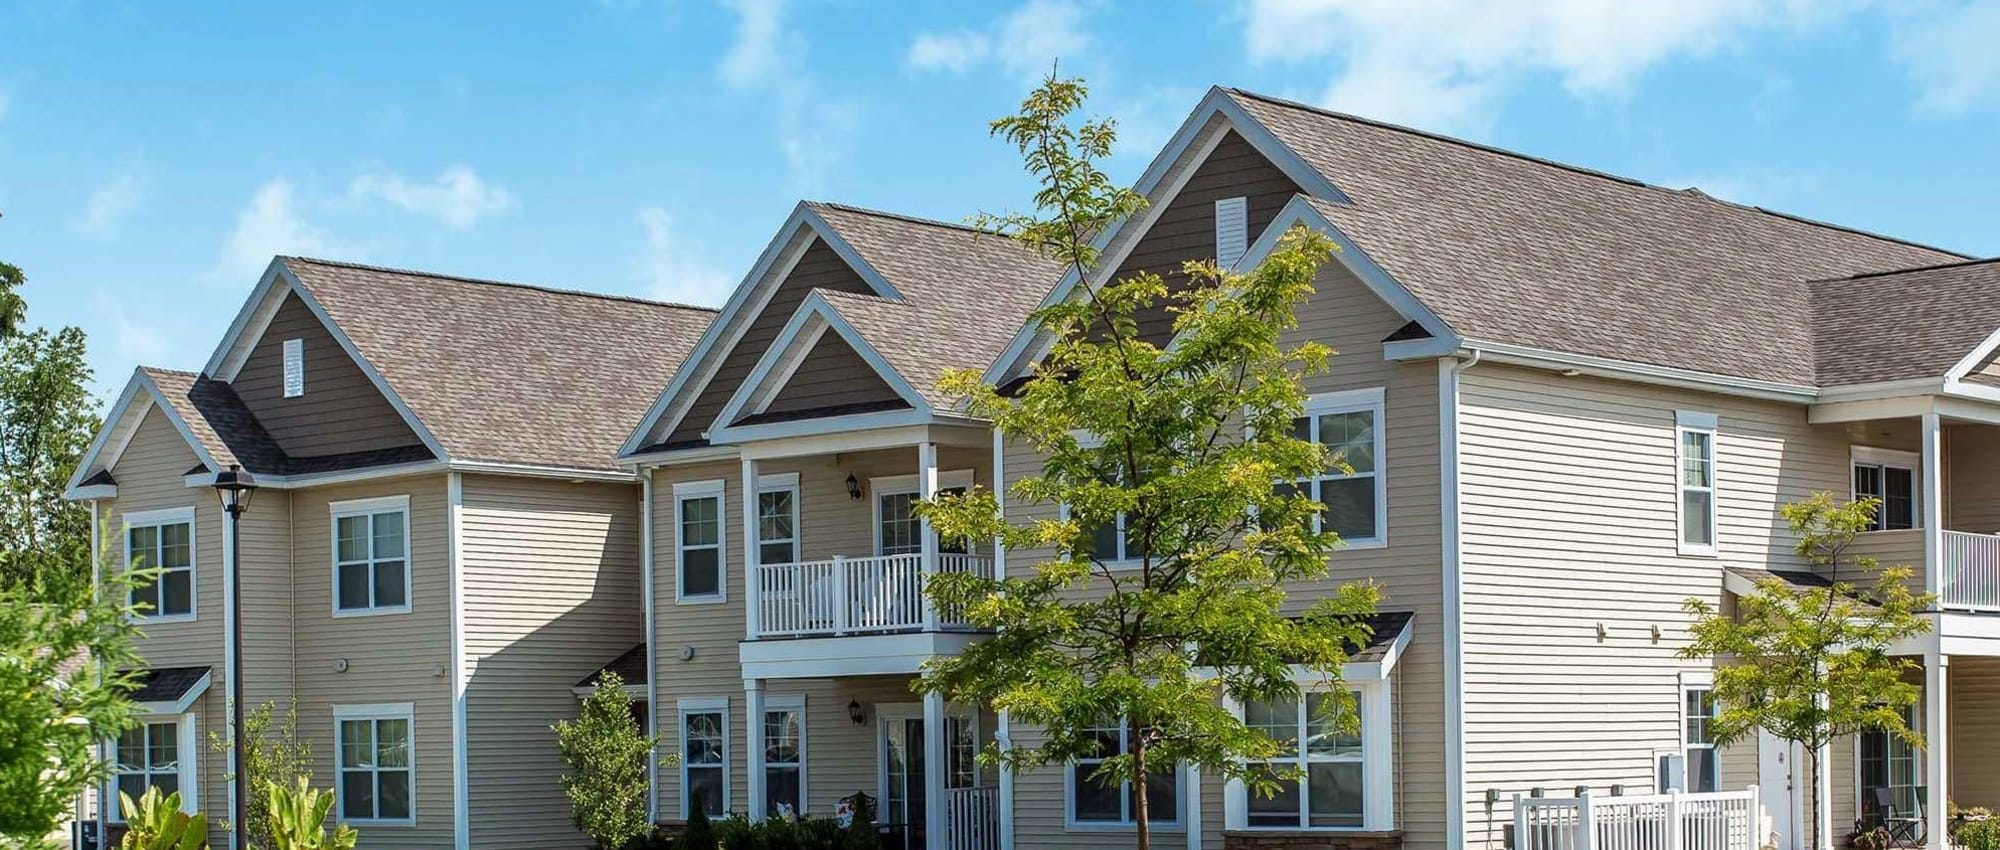 Apartments at Canal Crossing in Camillus, New York